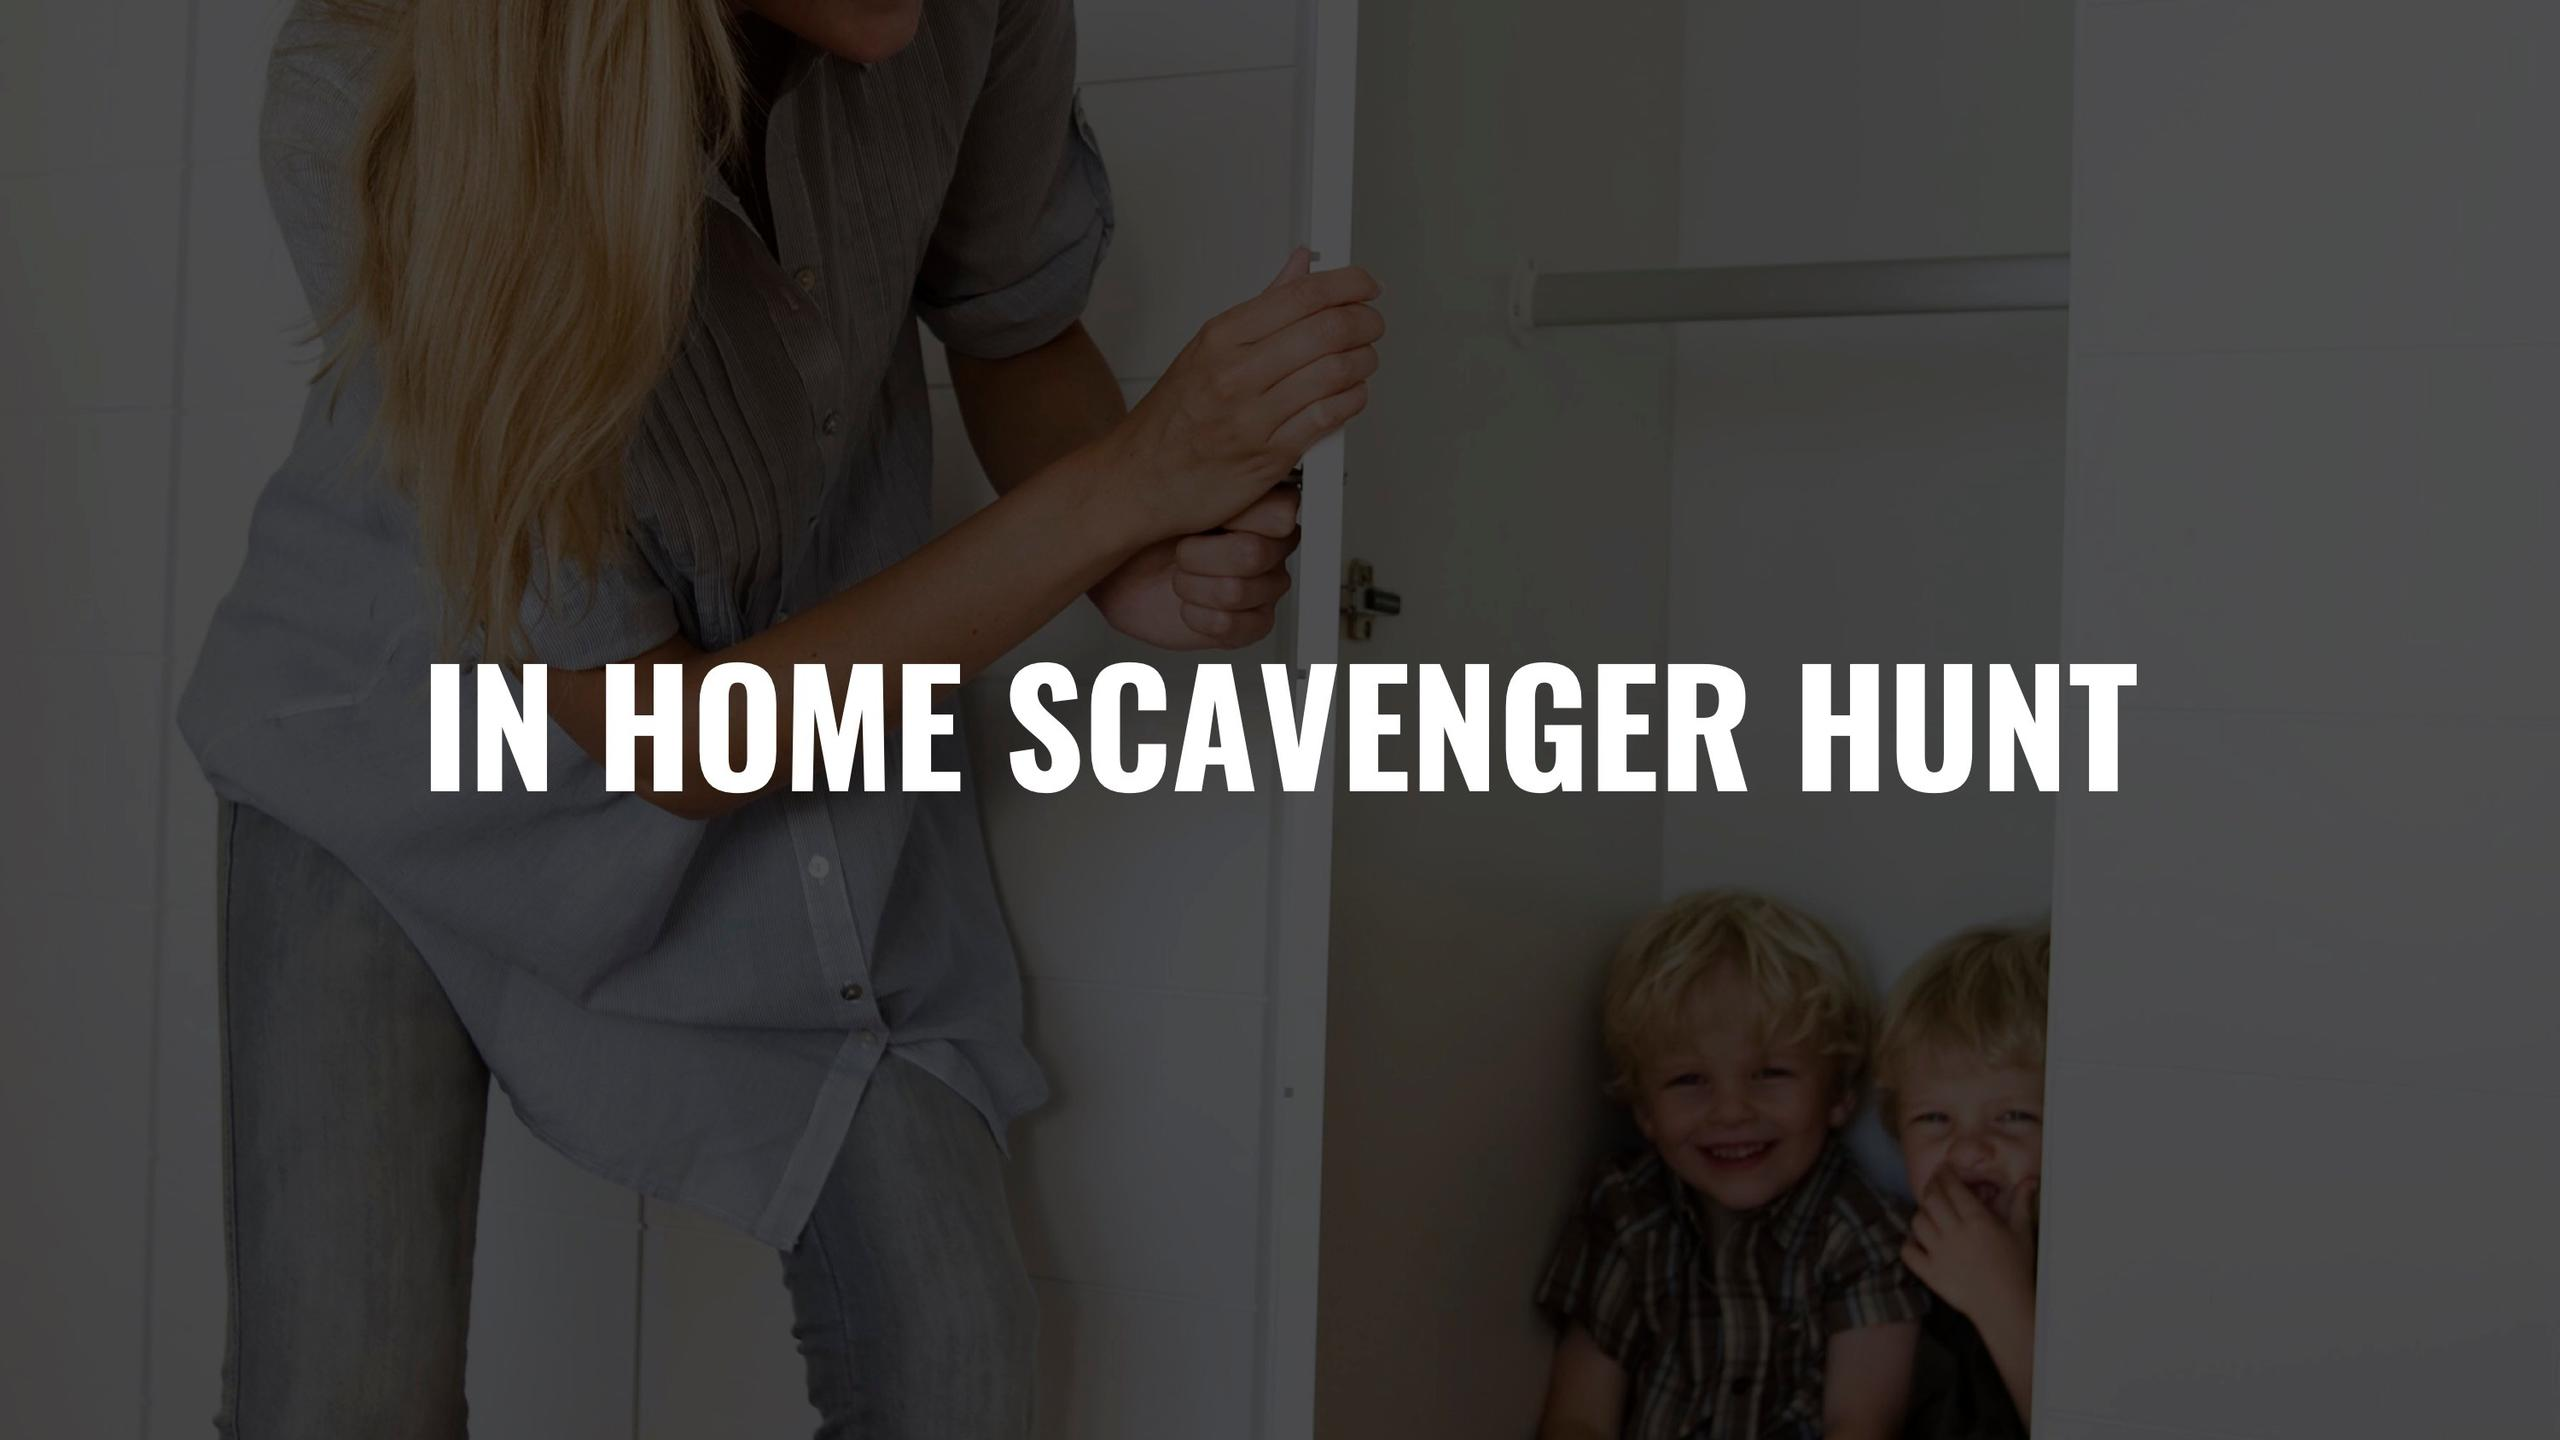 In Home Scavenger Hunt